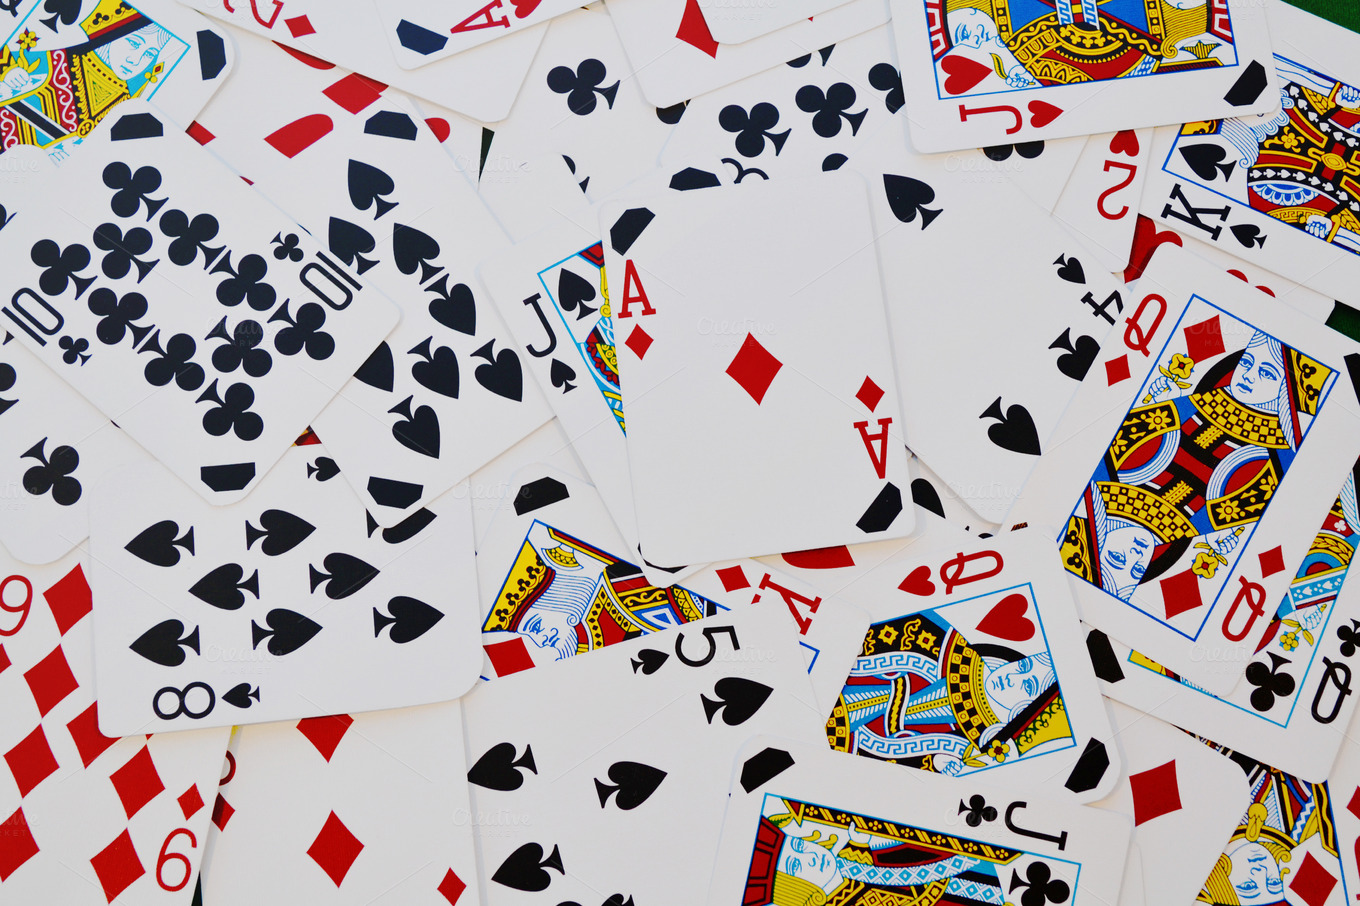 Playing Cards ~ Arts & Entertainment Photos on Creative Market